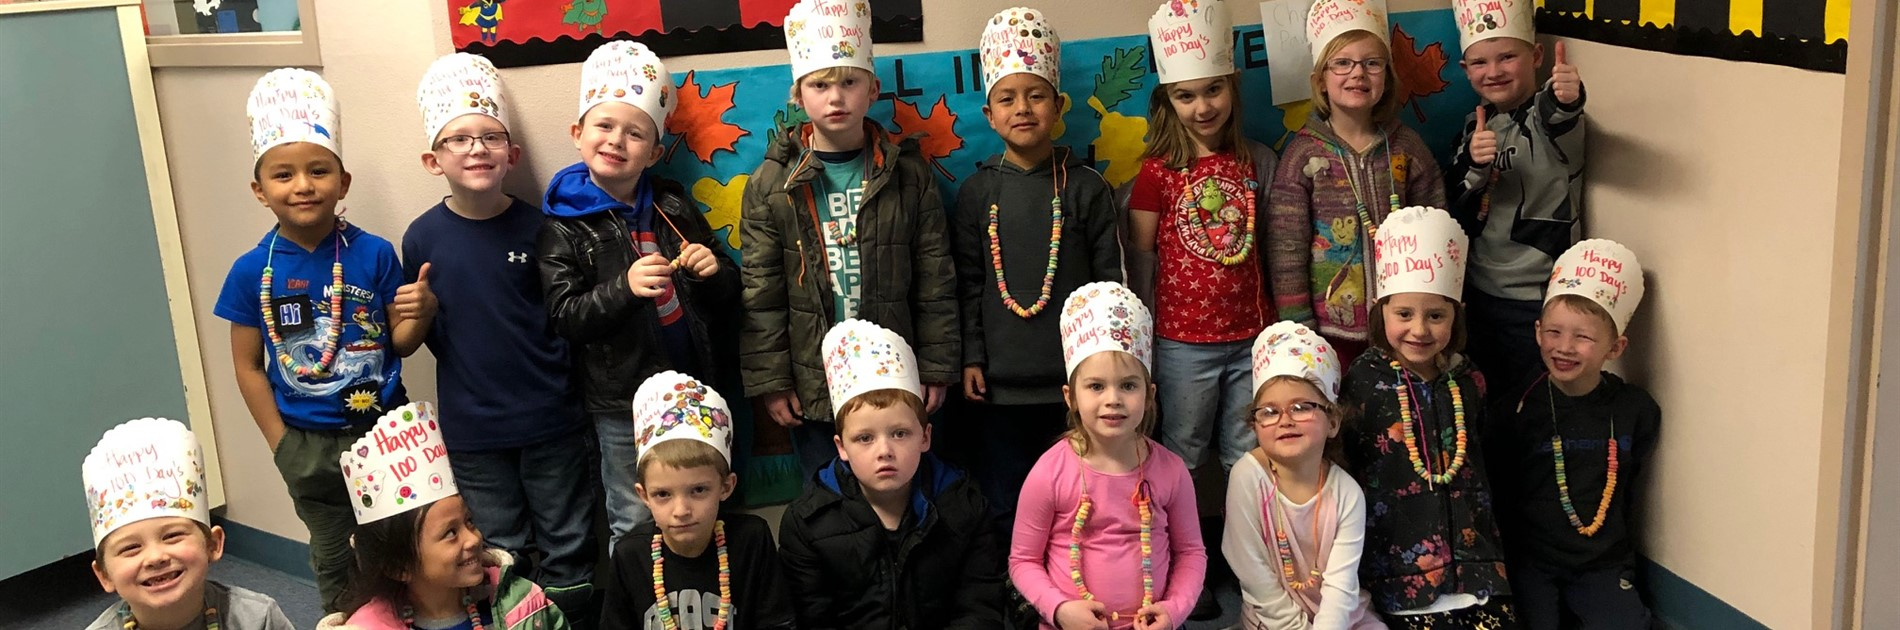 Students wearing Day 100 hats they made